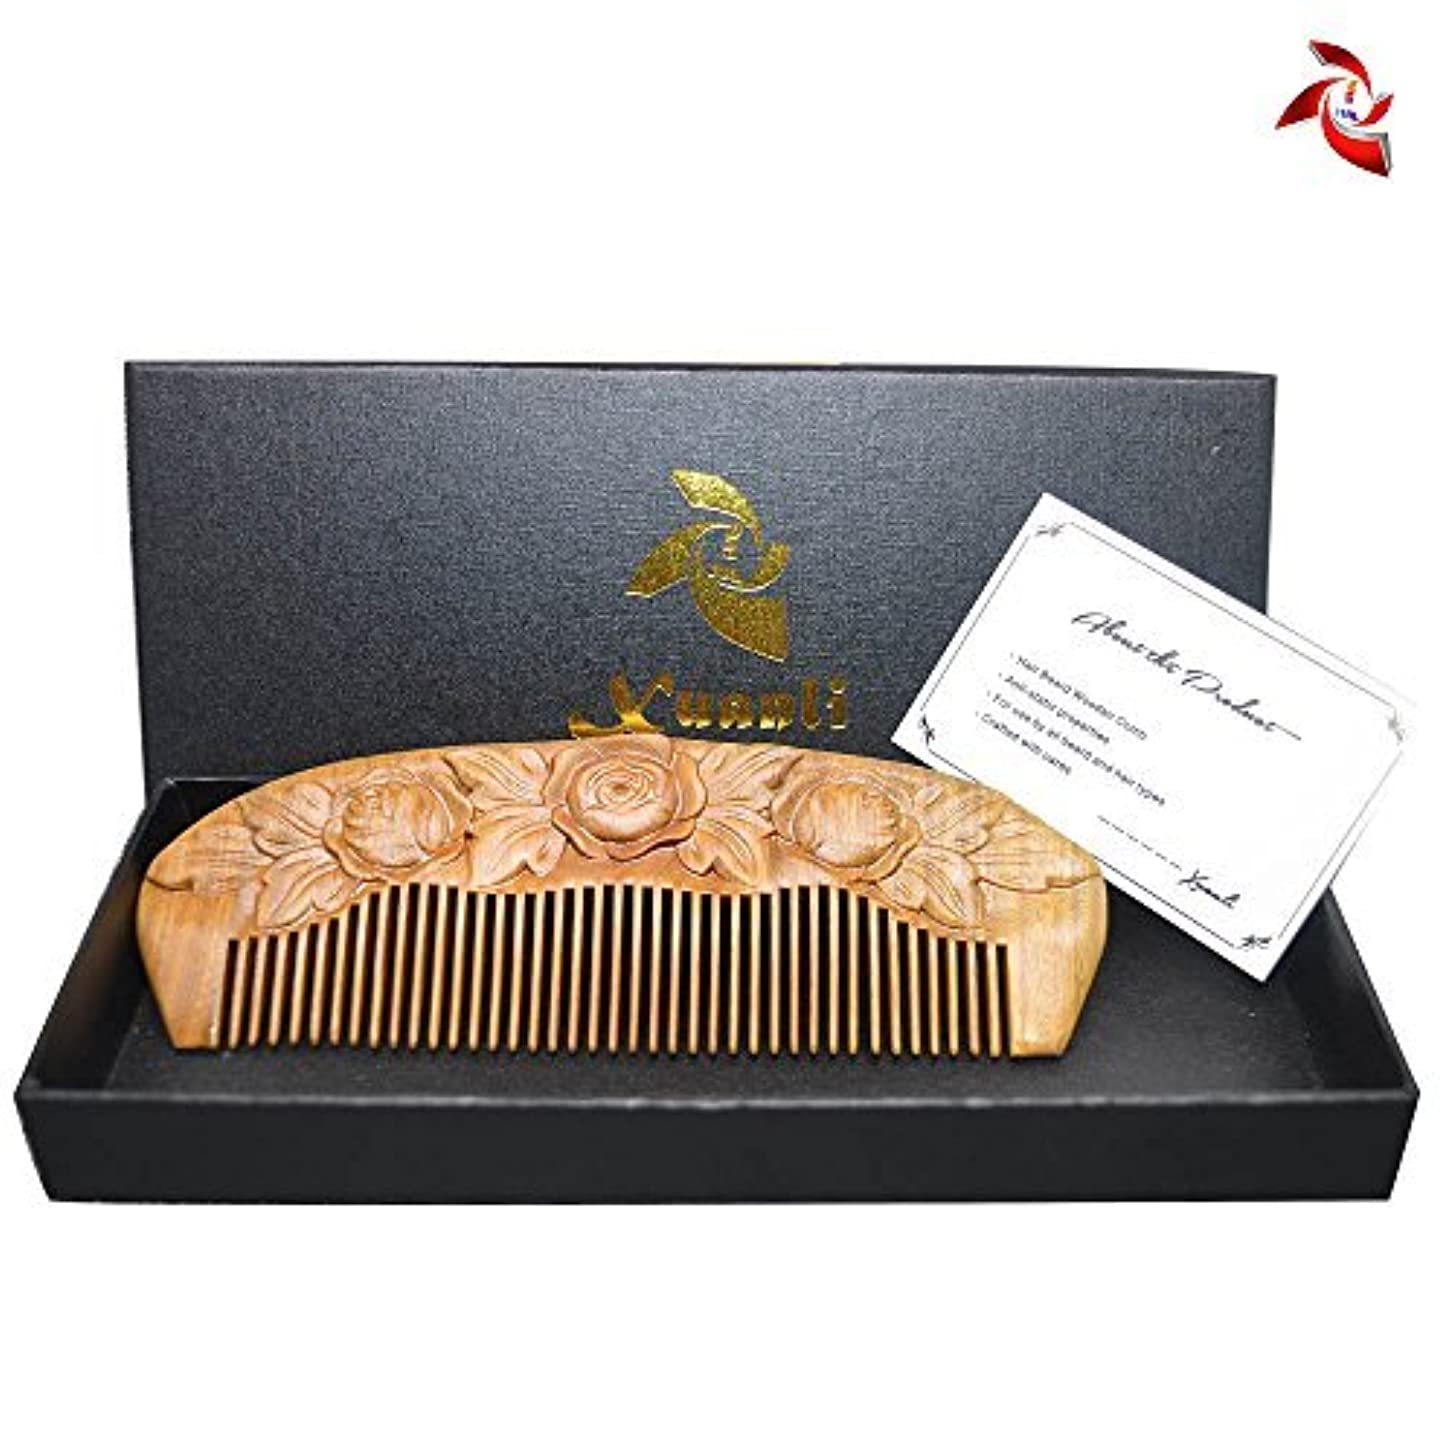 ユーモラス護衛記念碑的なXuanli Wood Combs Carving roses design Natural Green Sandalwood Combs Top Quality Handmade Combs For Hair No Static...